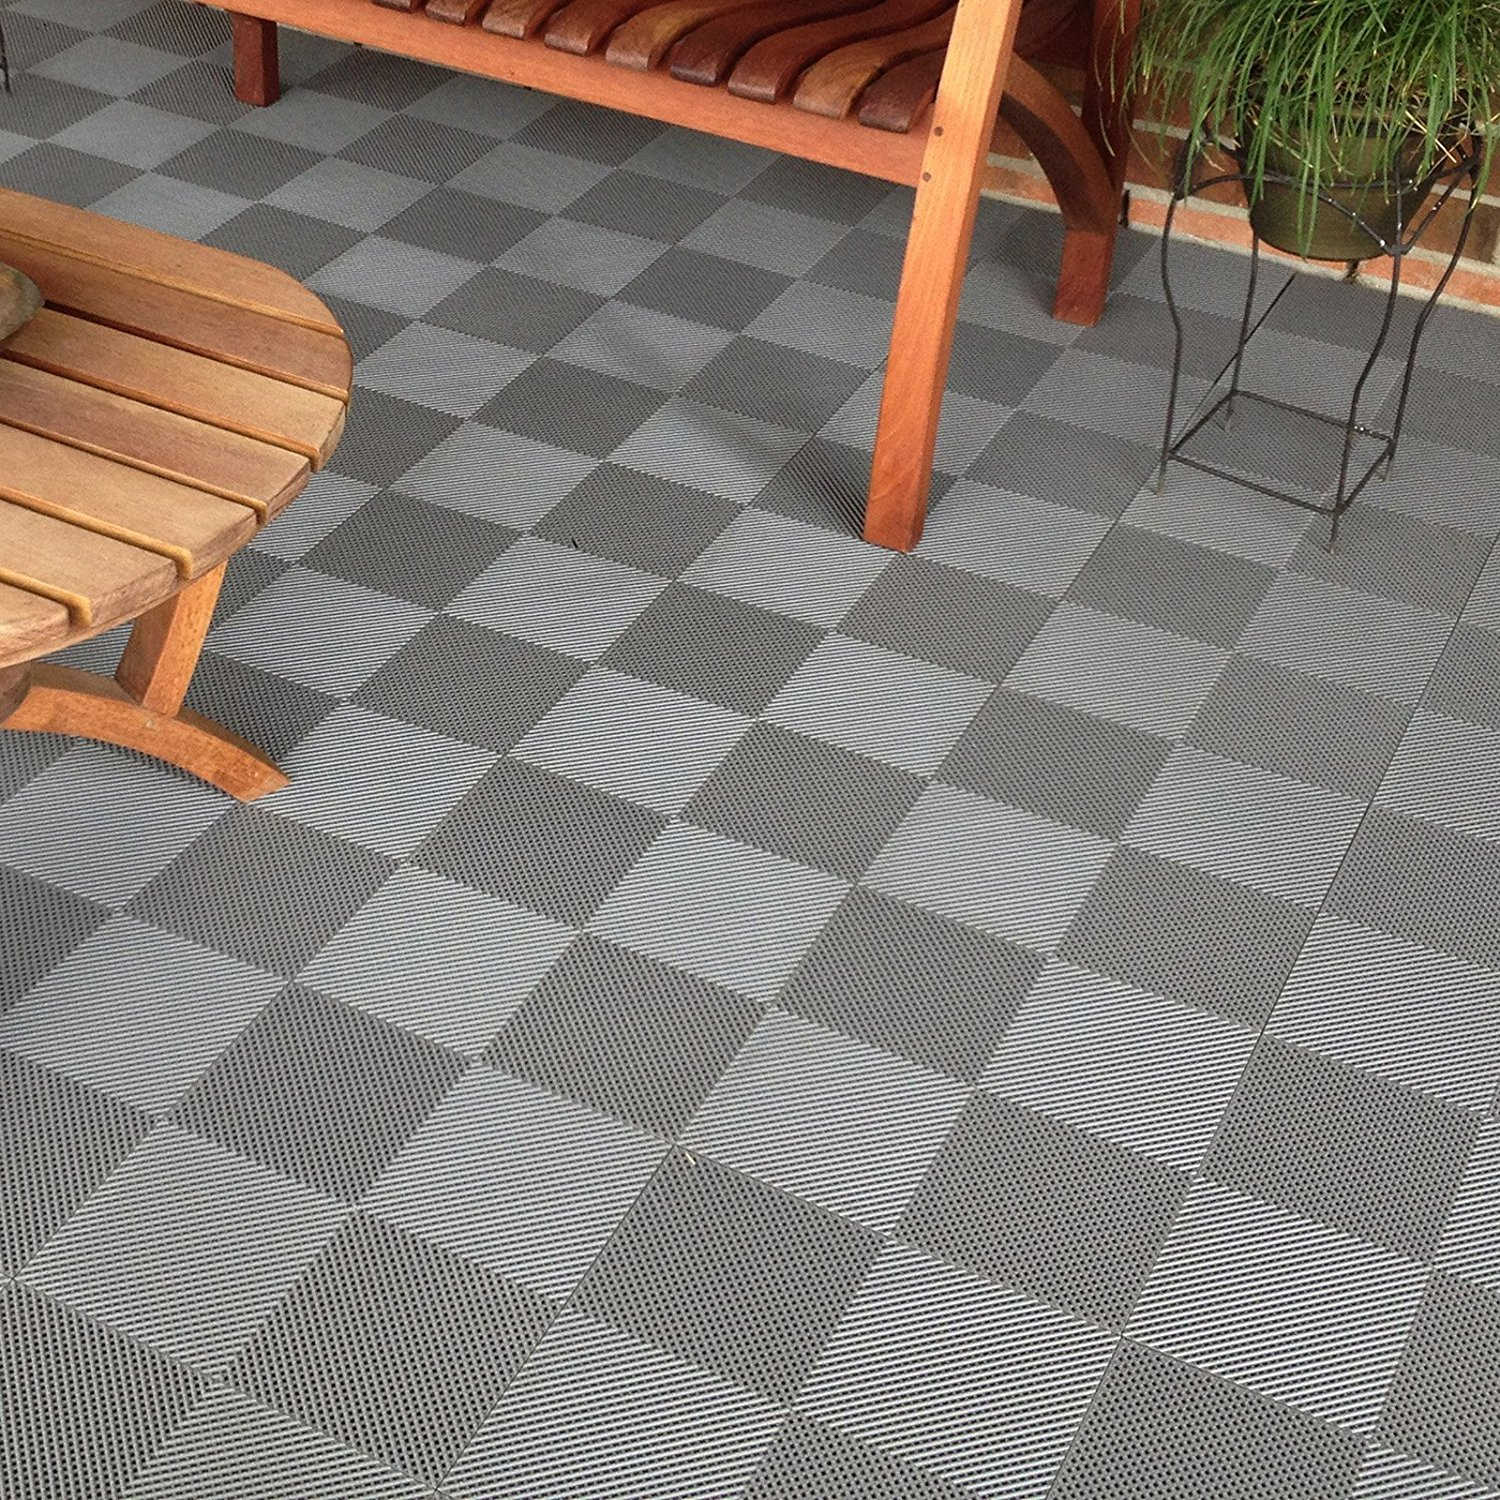 Outdoor tiles the tile home guide outdoor tiles dailygadgetfo Images